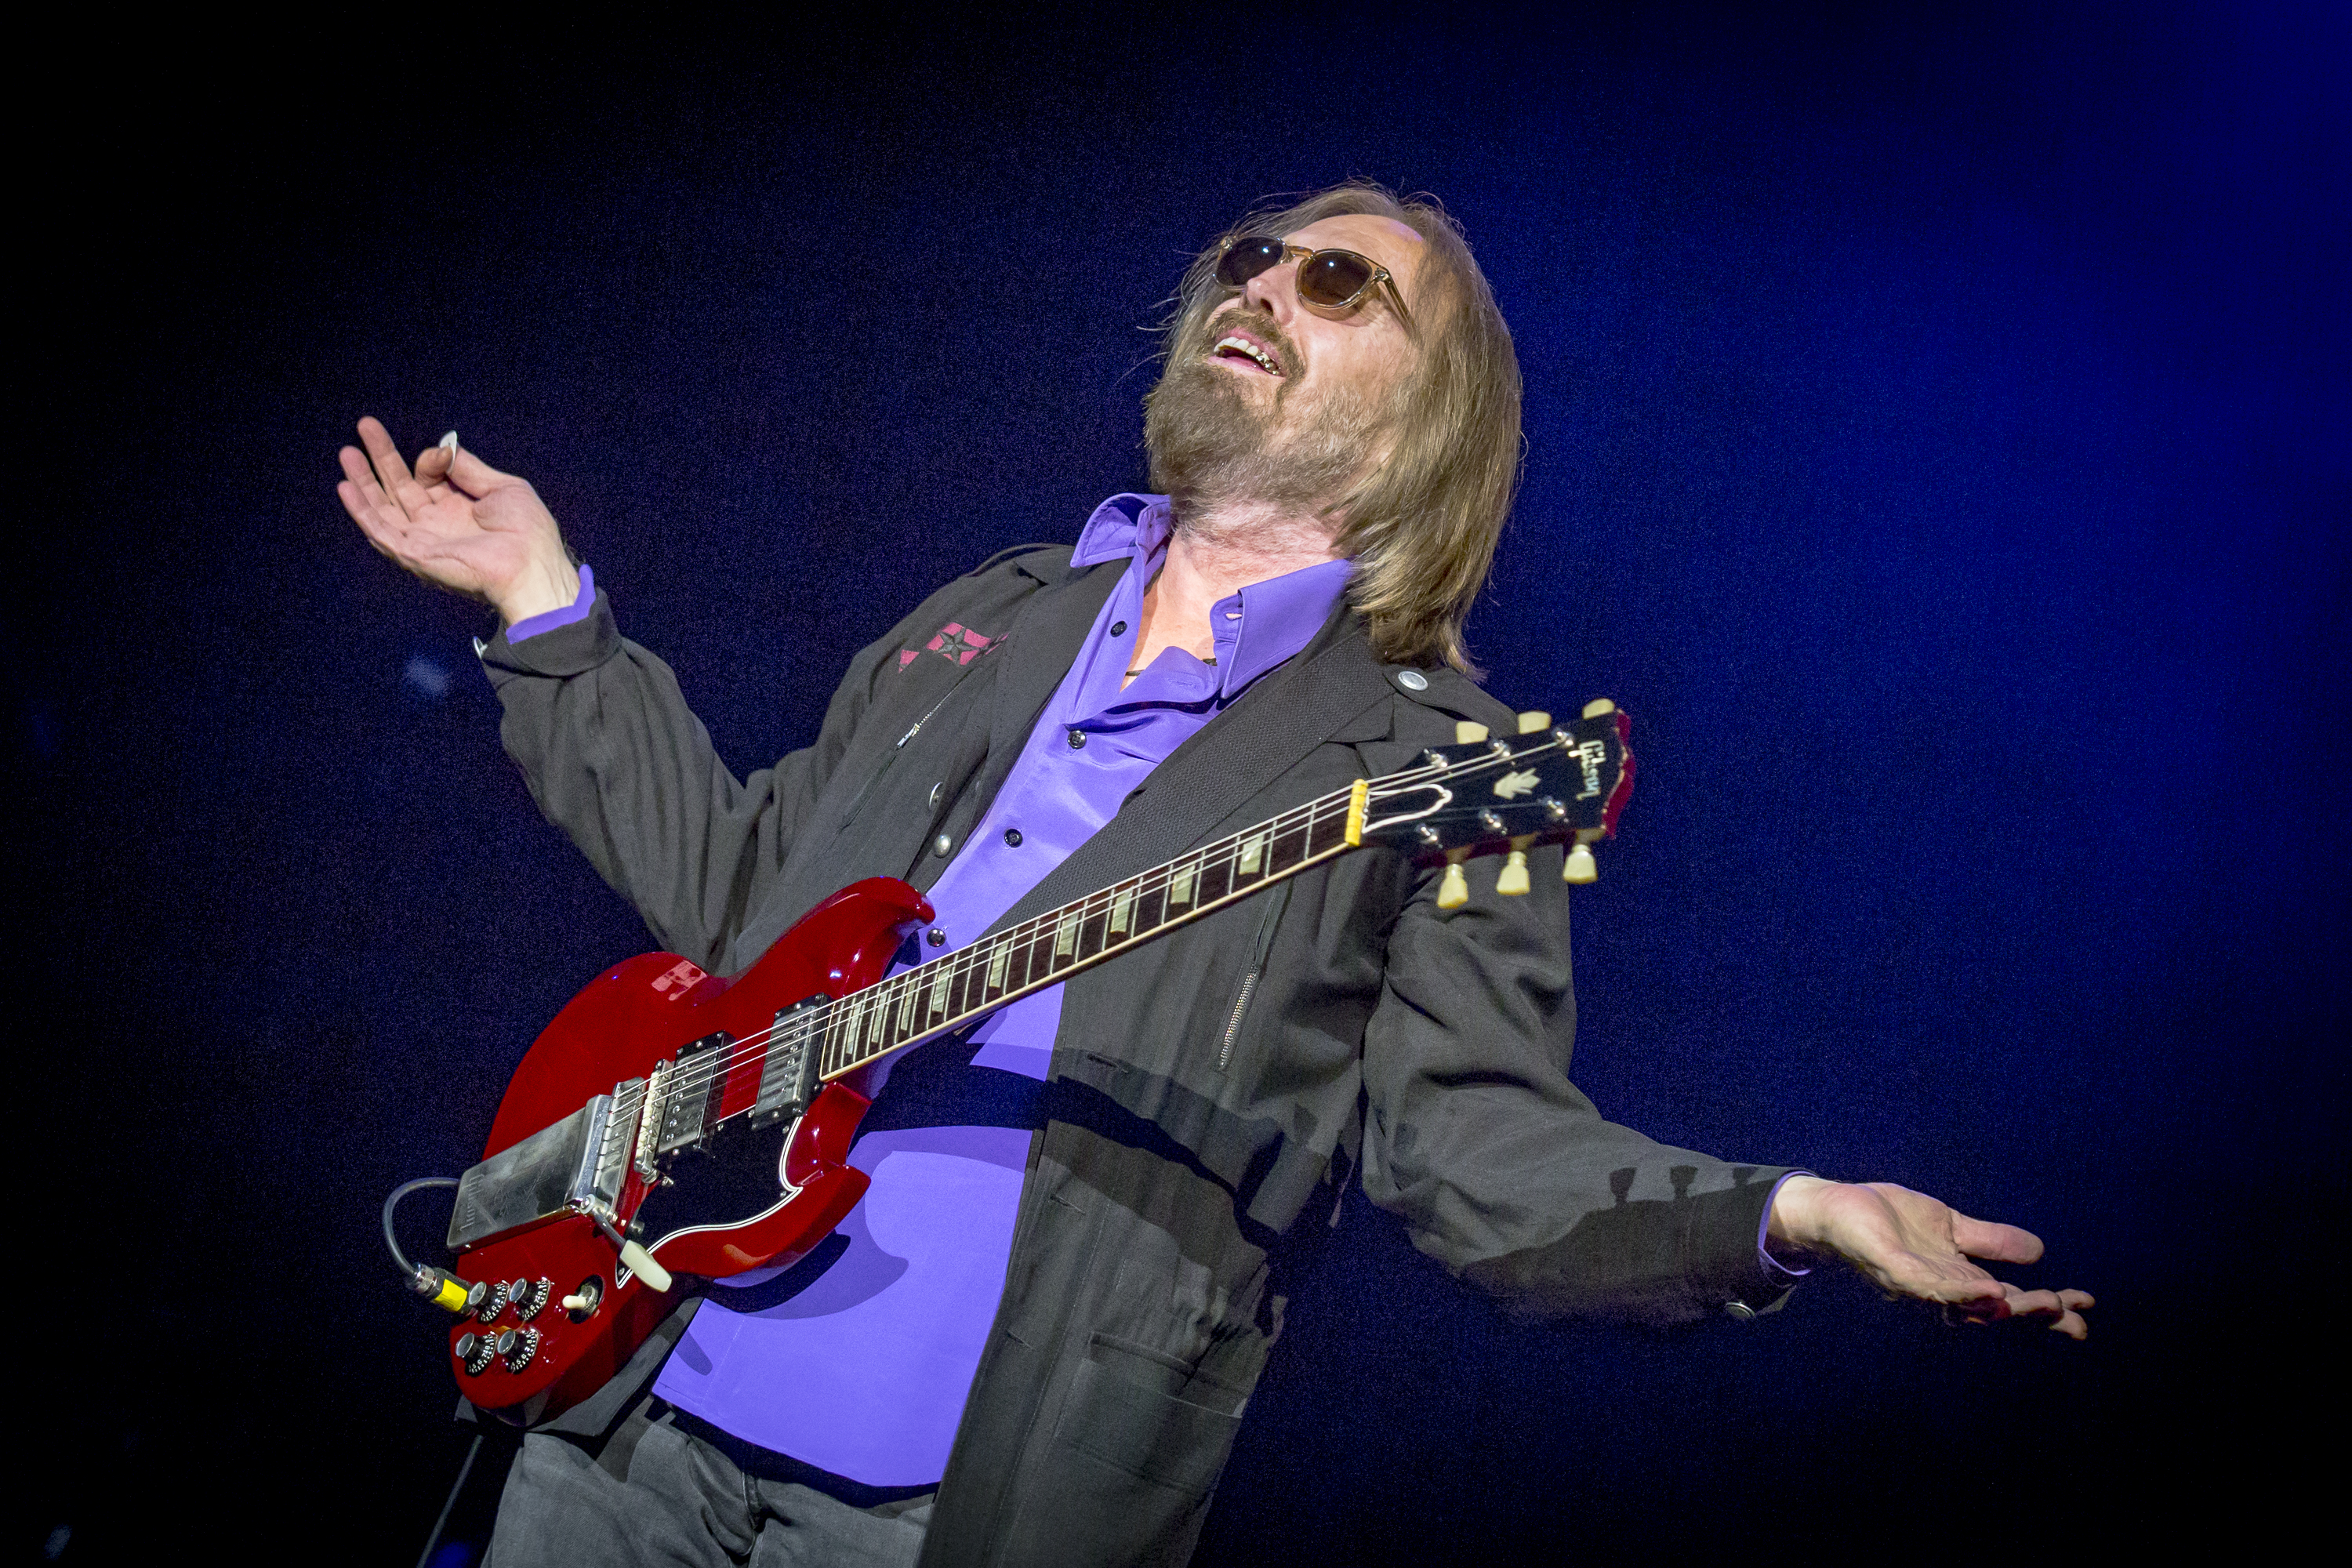 Tom Petty performs at the RBC Bluesfest in Ottawa on Sunday, July 16, 2017. The RBC Bluesfest is ranked by Billboard as one of the most successful music events in North America. ~ RBC Bluesfest Press Images  PHOTO/Mark Horton